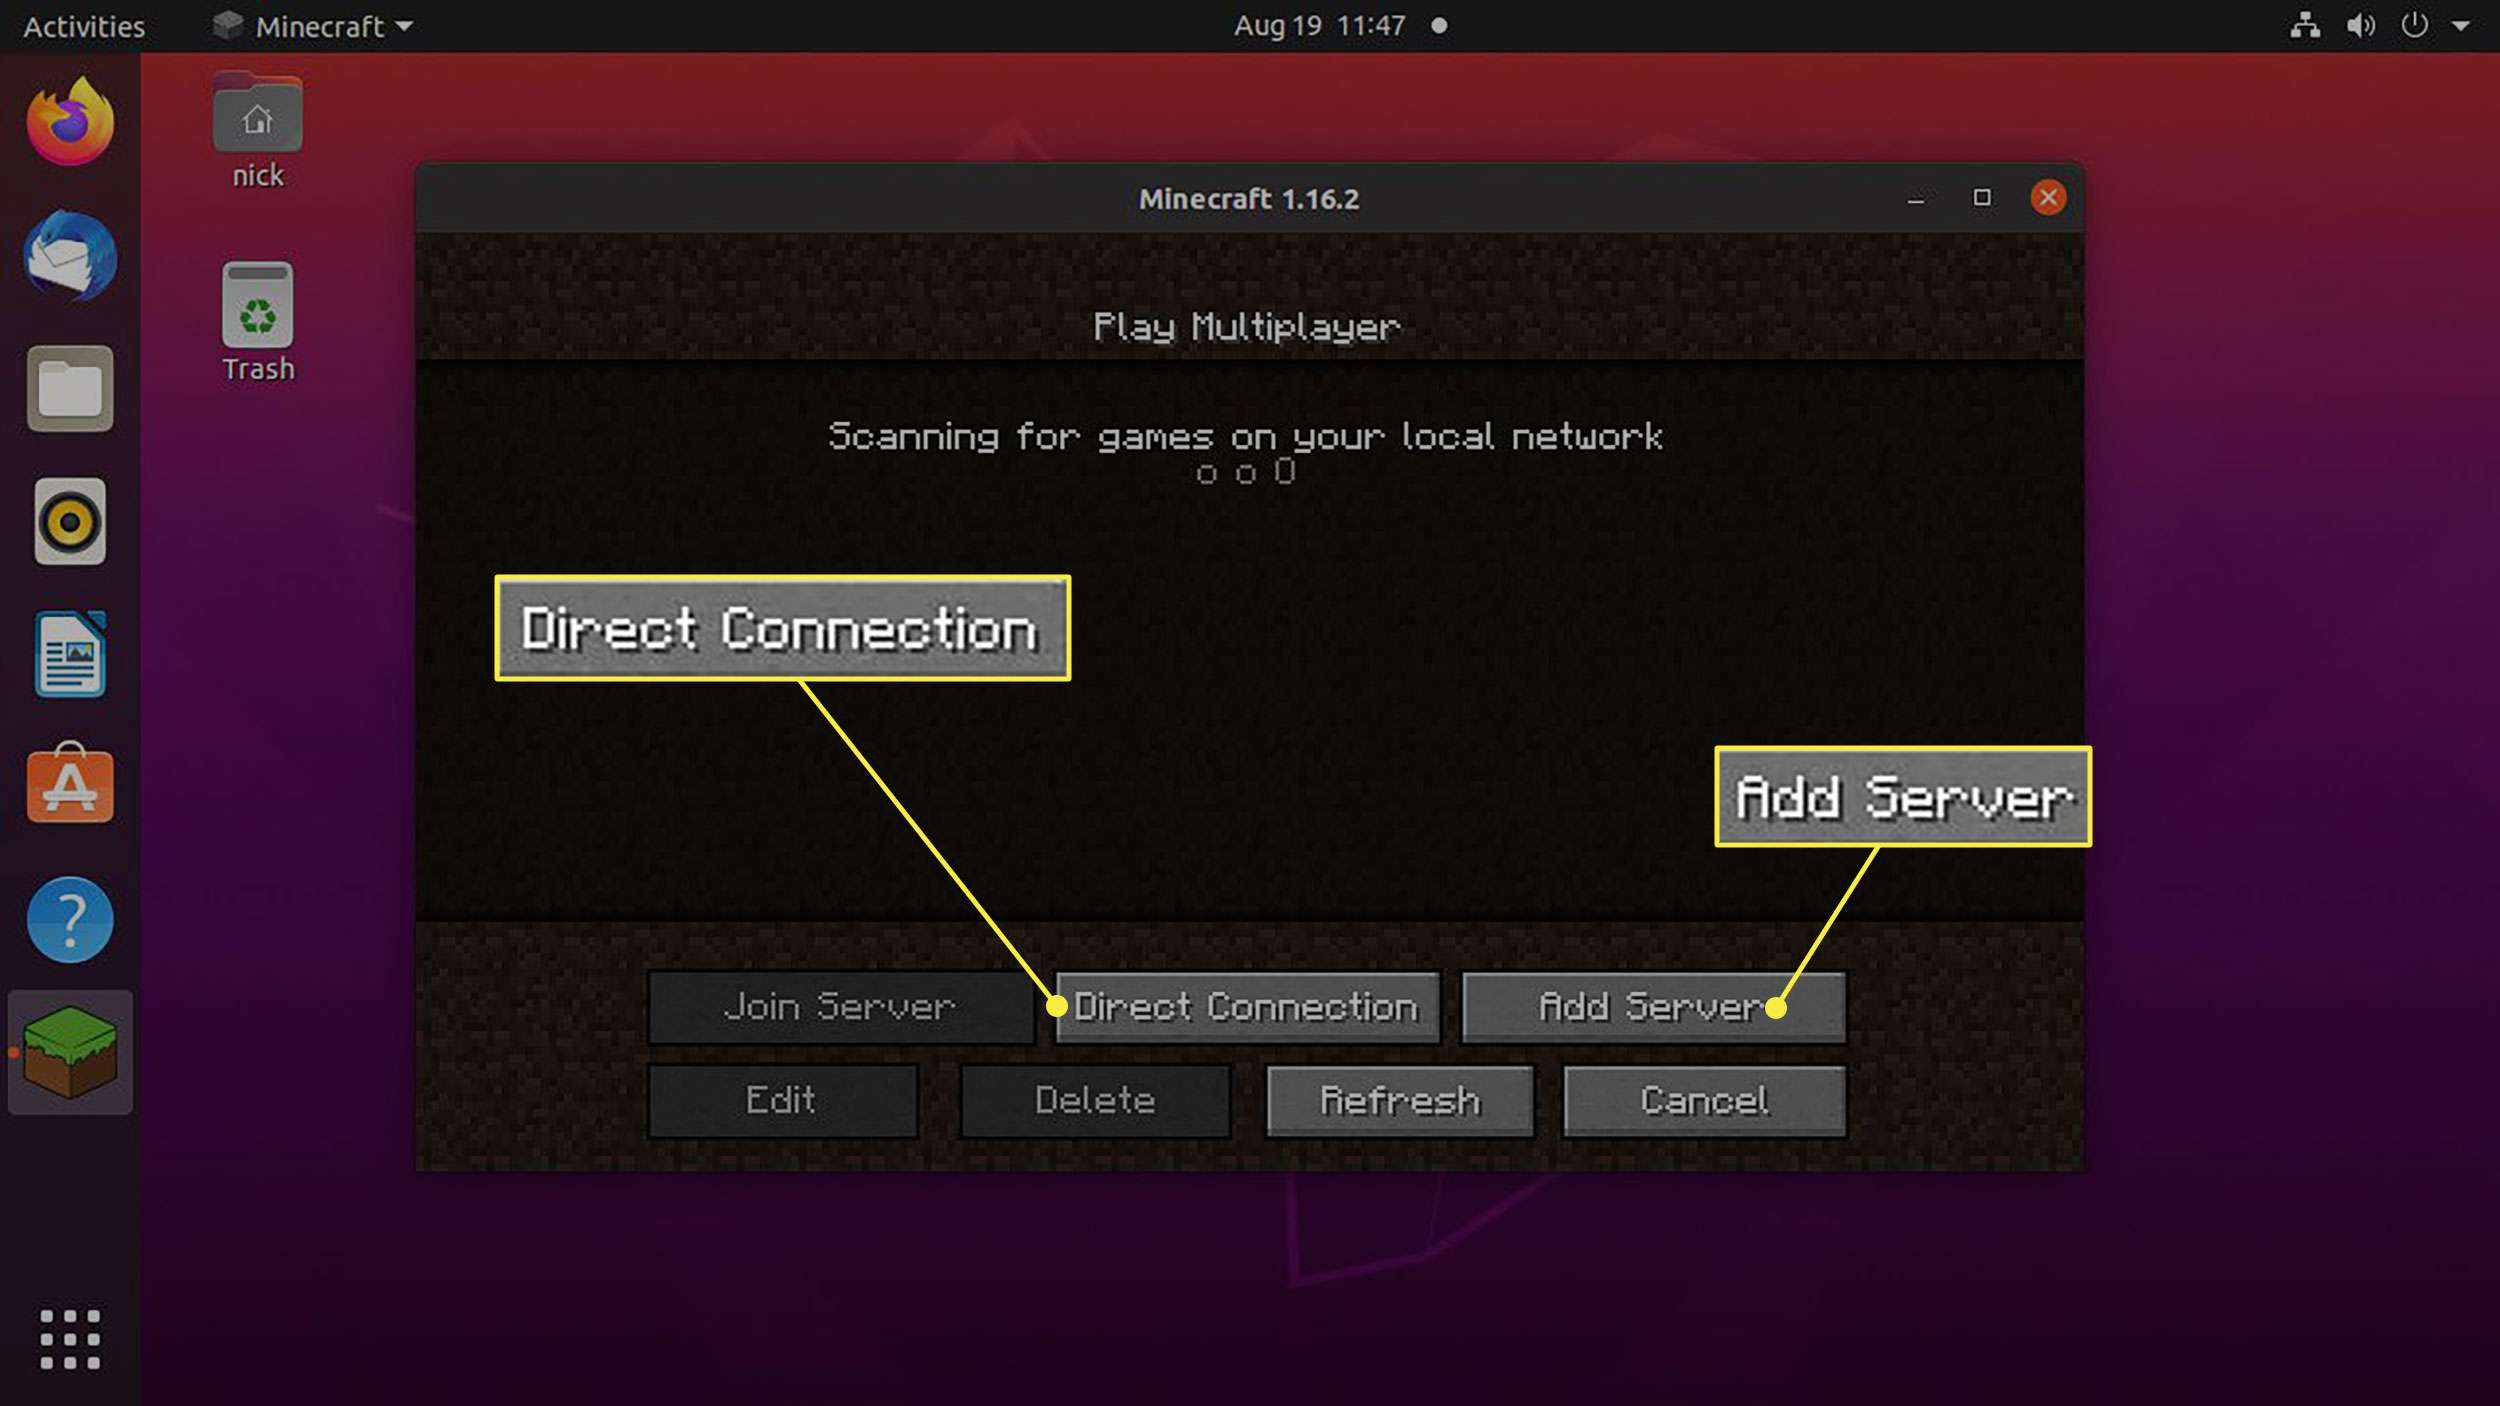 The Direct Connection and Add Server buttons